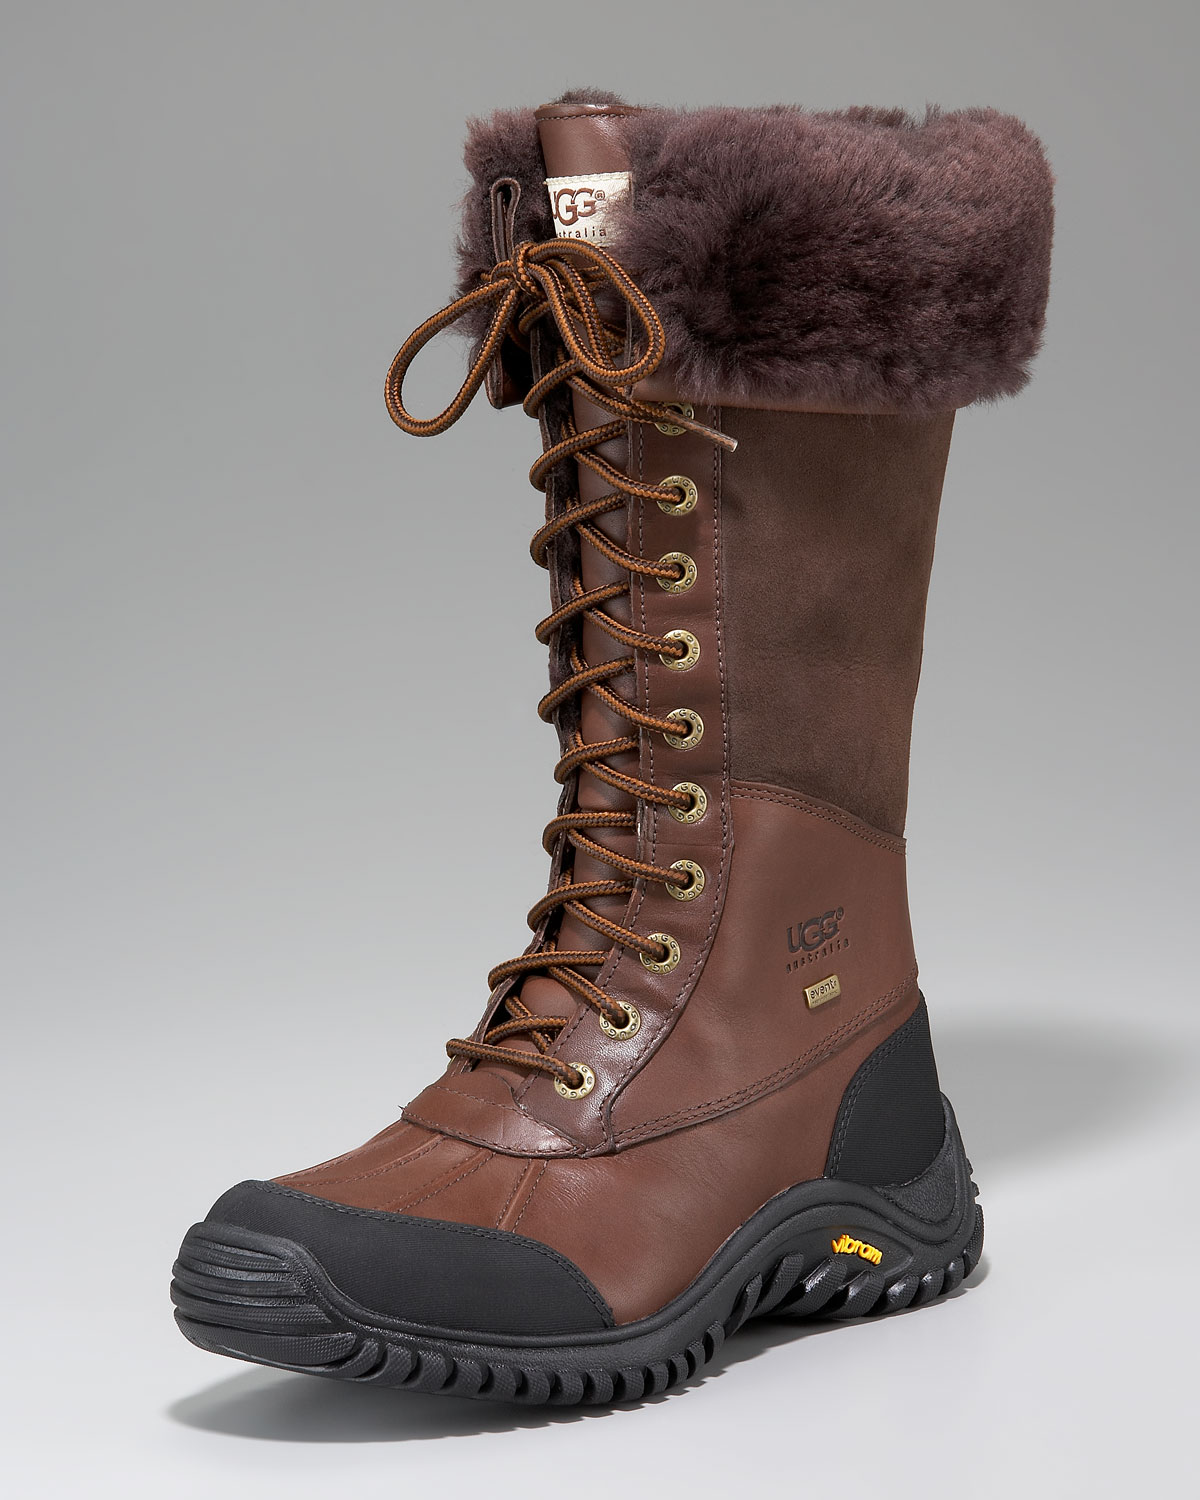 Ugg Adirondack Tall Leather Boot In Brown Lyst